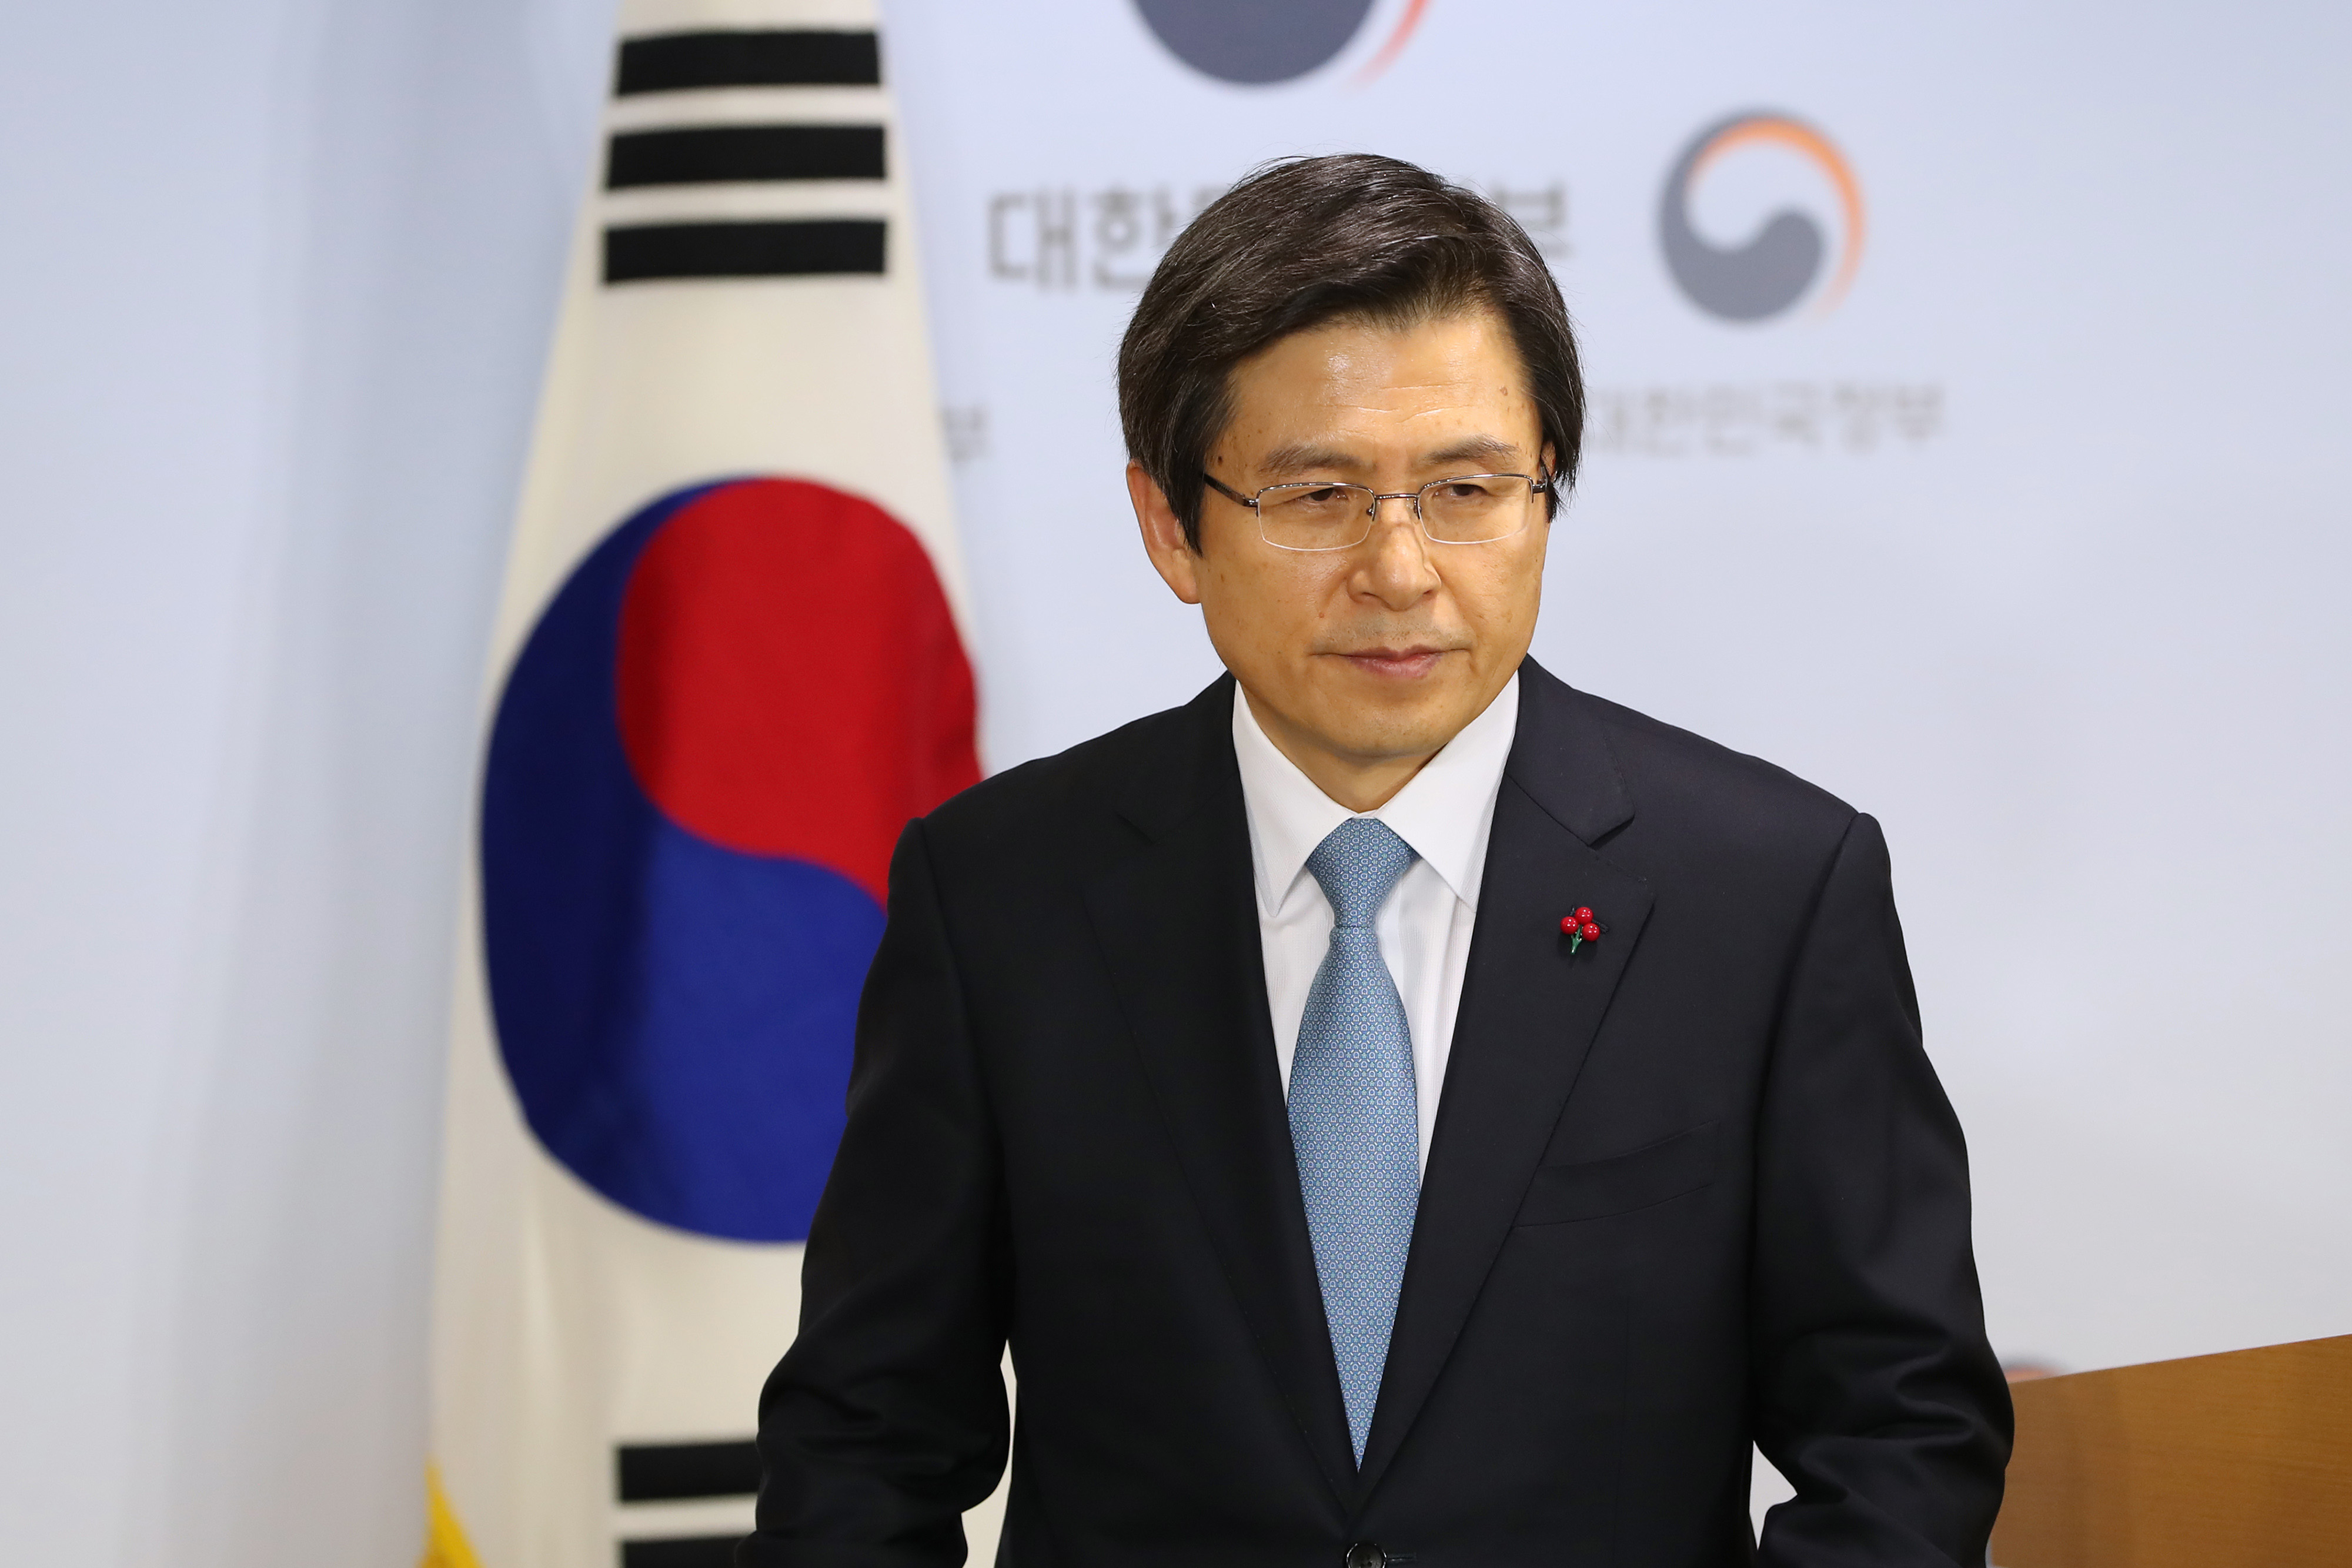 Hwang Kyo-ahn, South Korea's prime minister, departs a news conference in Seoul, South Korea, on Friday, Dec. 9, 2016.